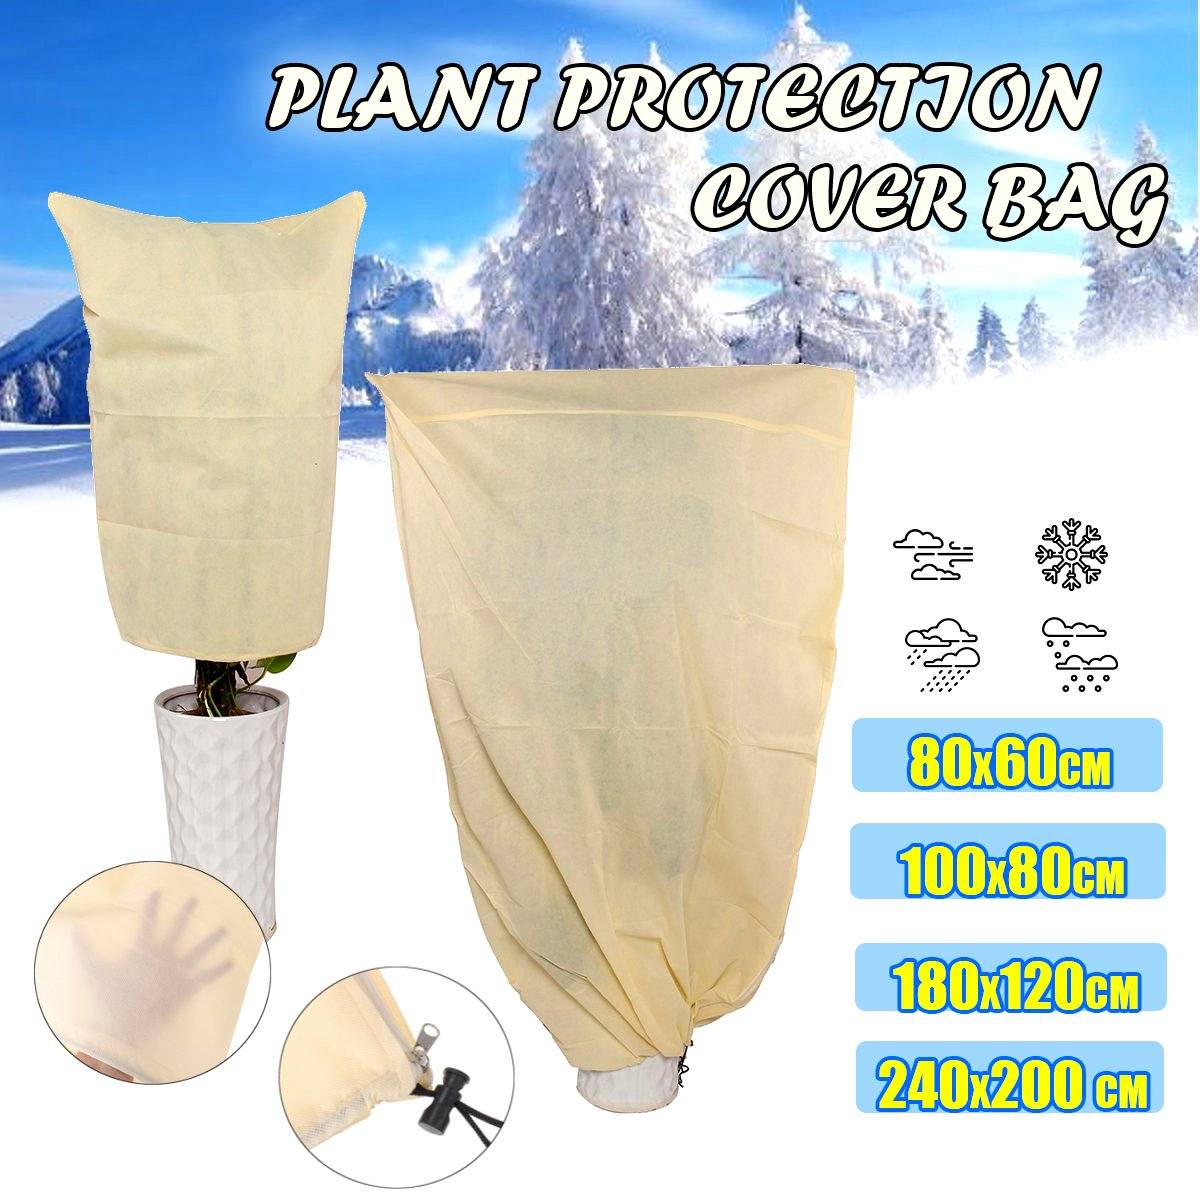 Outdoor Winter Garden Yard Shrub Potted Plant Anti Freeze Frost Protection Cover Bag Plant Cover Warm Cover Tree Shrub